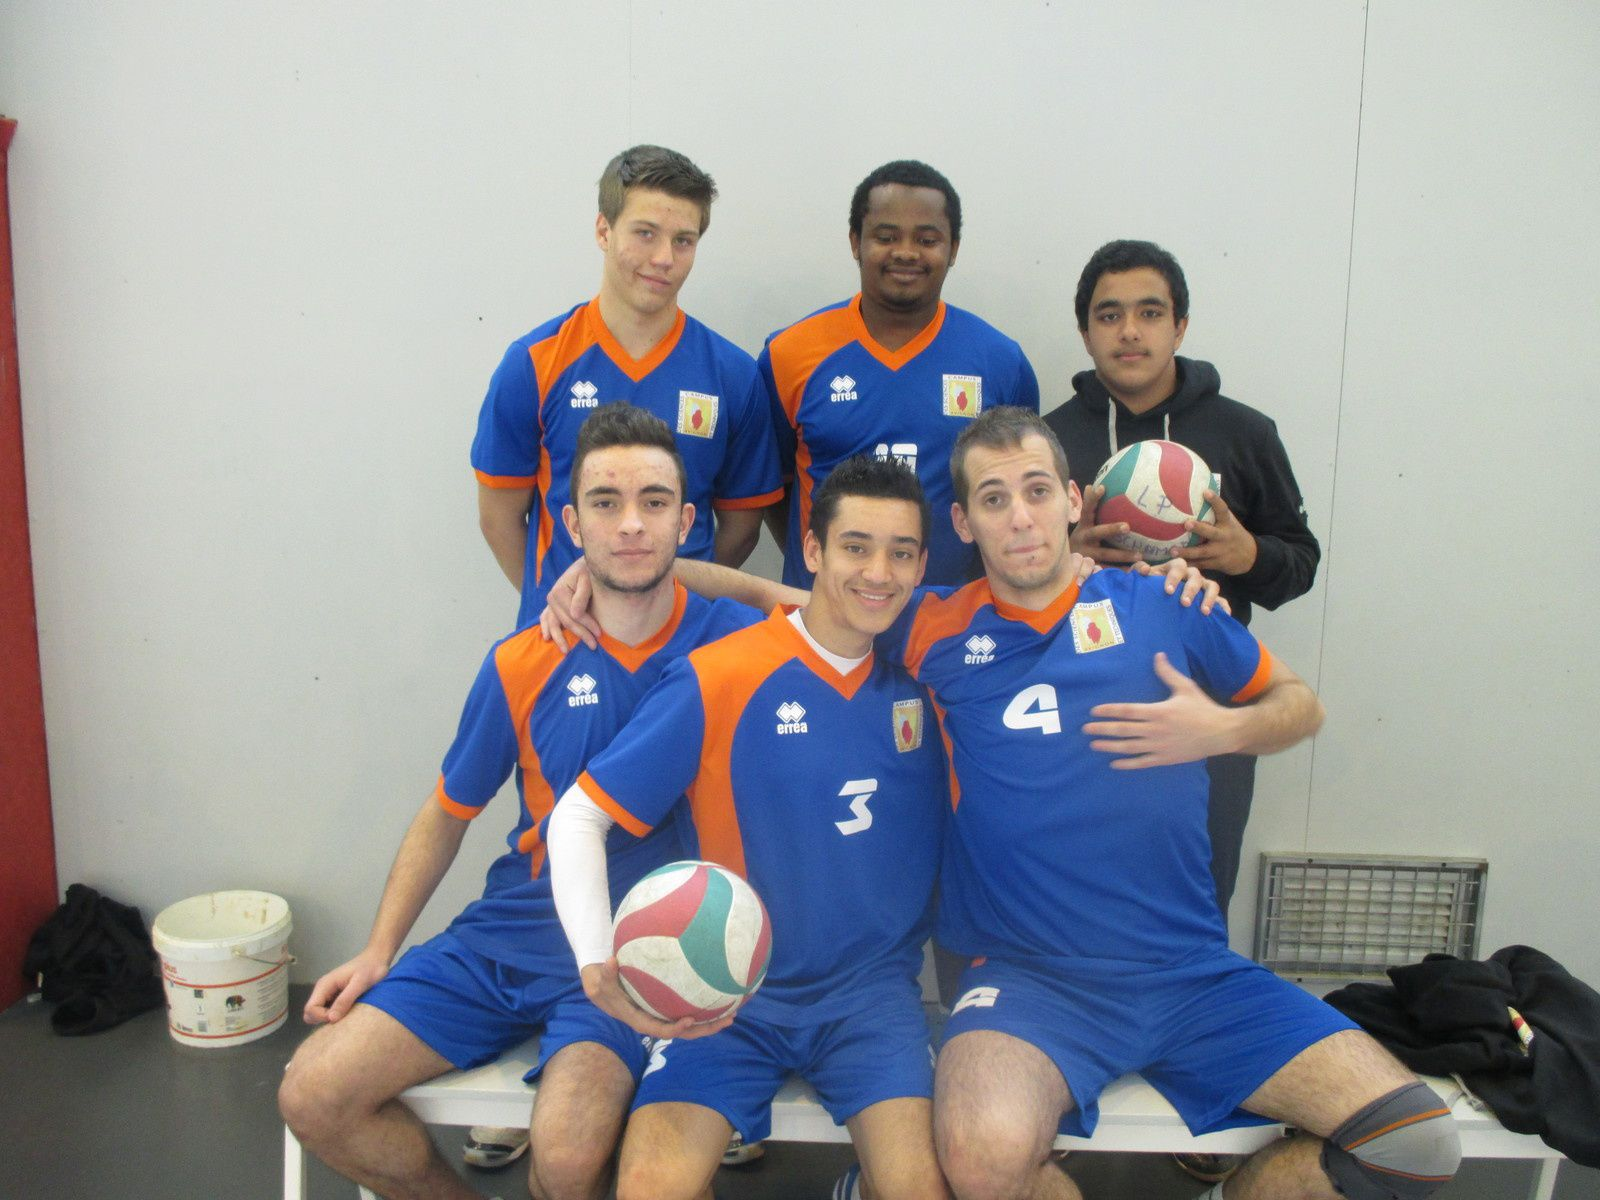 AS VOLLEY-BALL